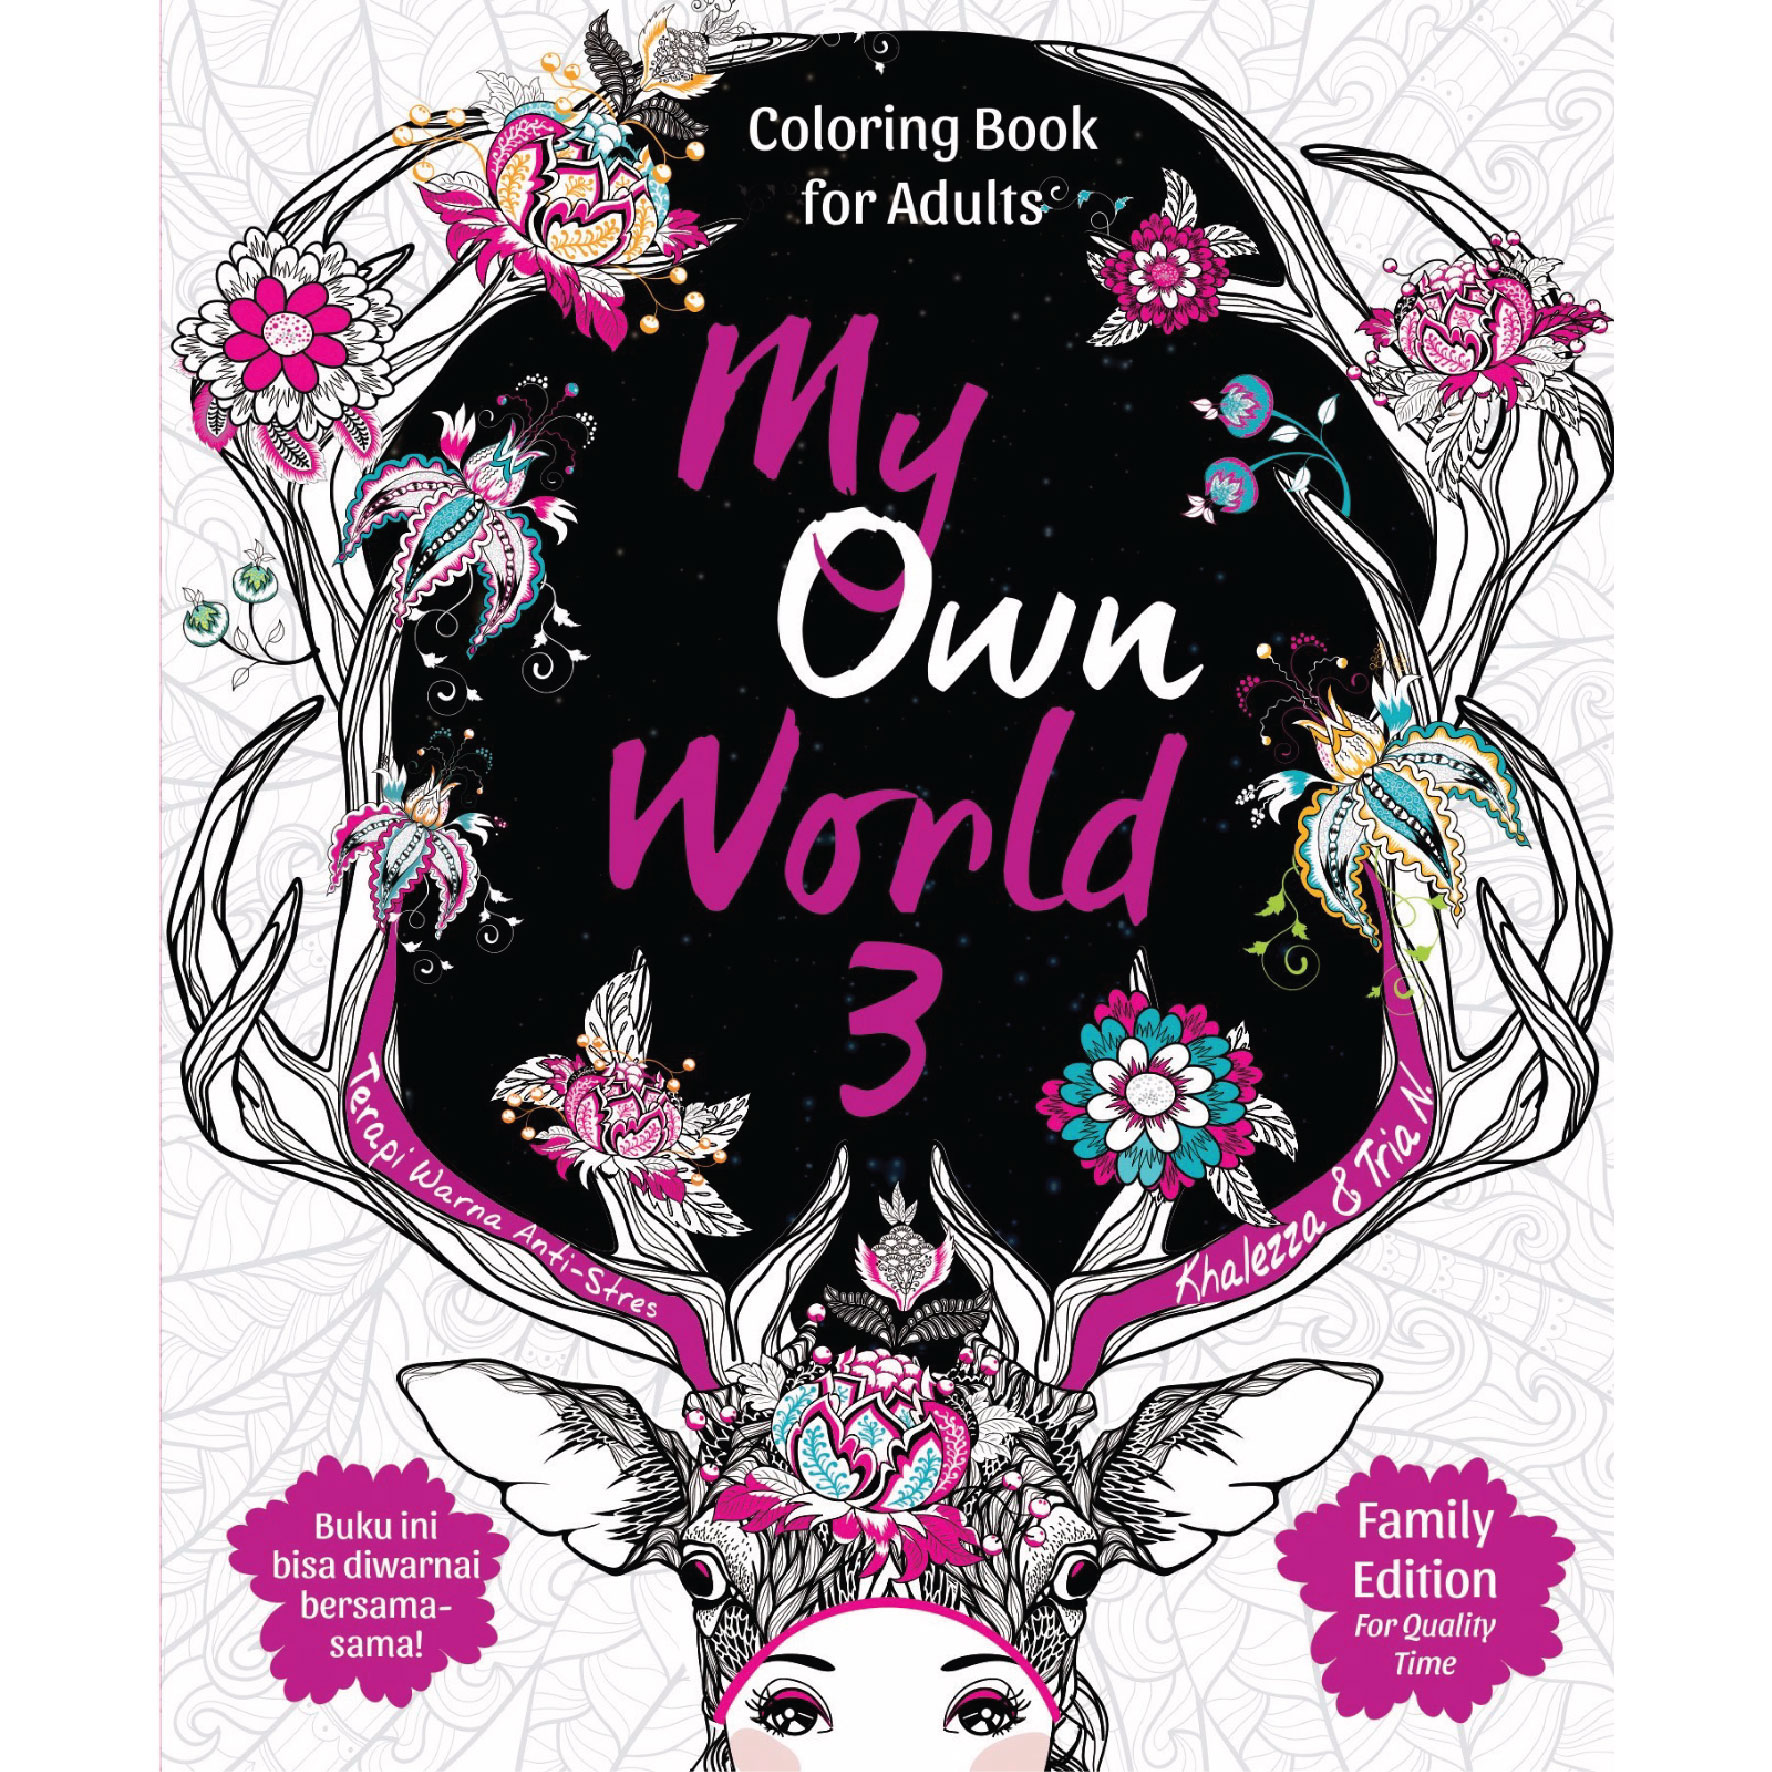 Jual My Own World 3 Coloring Book For Adults Family Edition